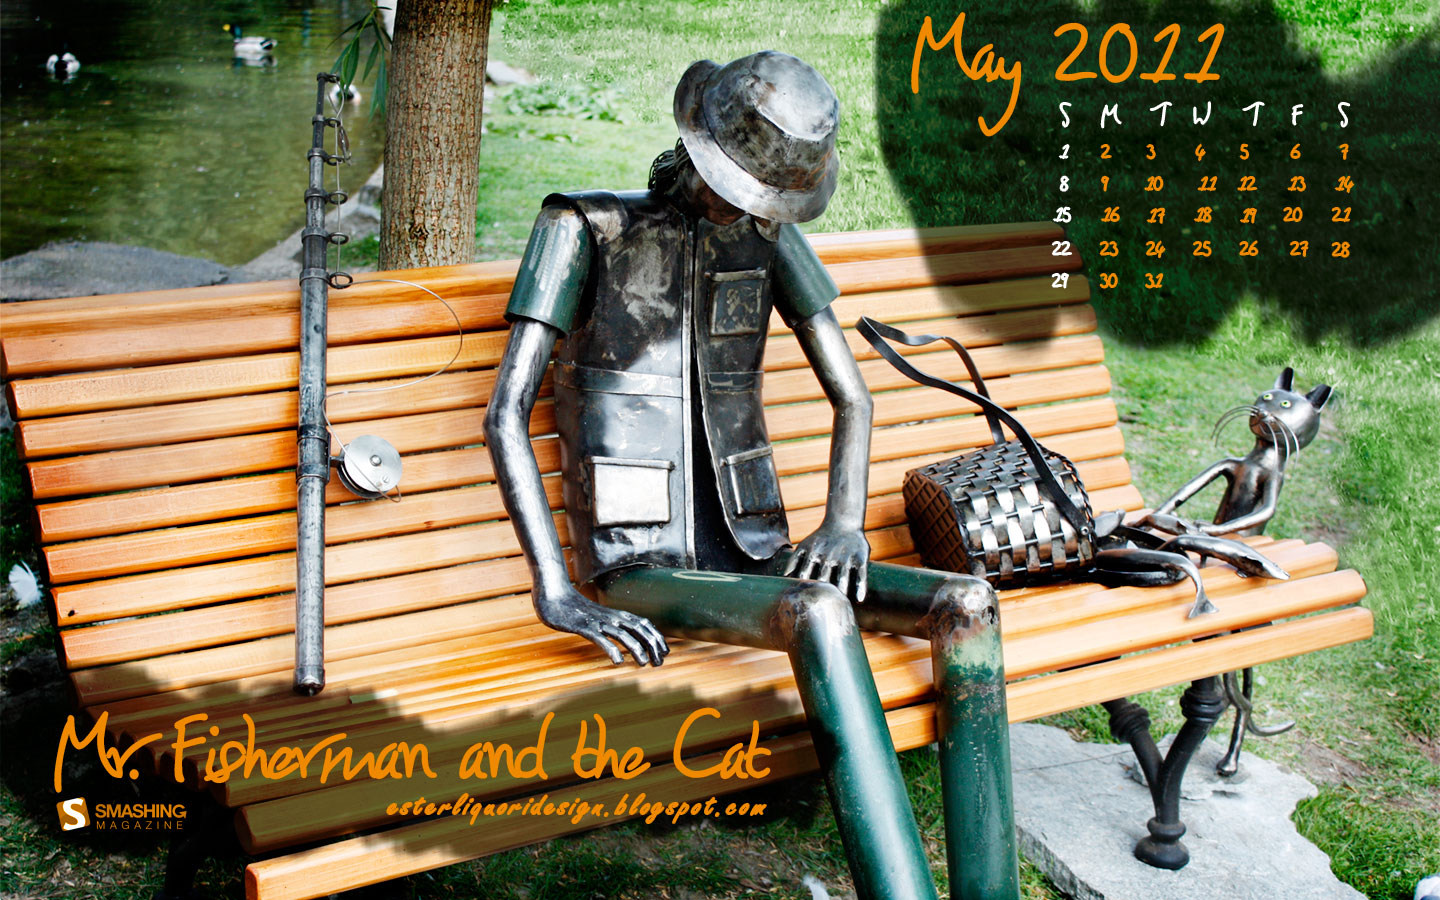 In January Calendar Wallpaper 29644